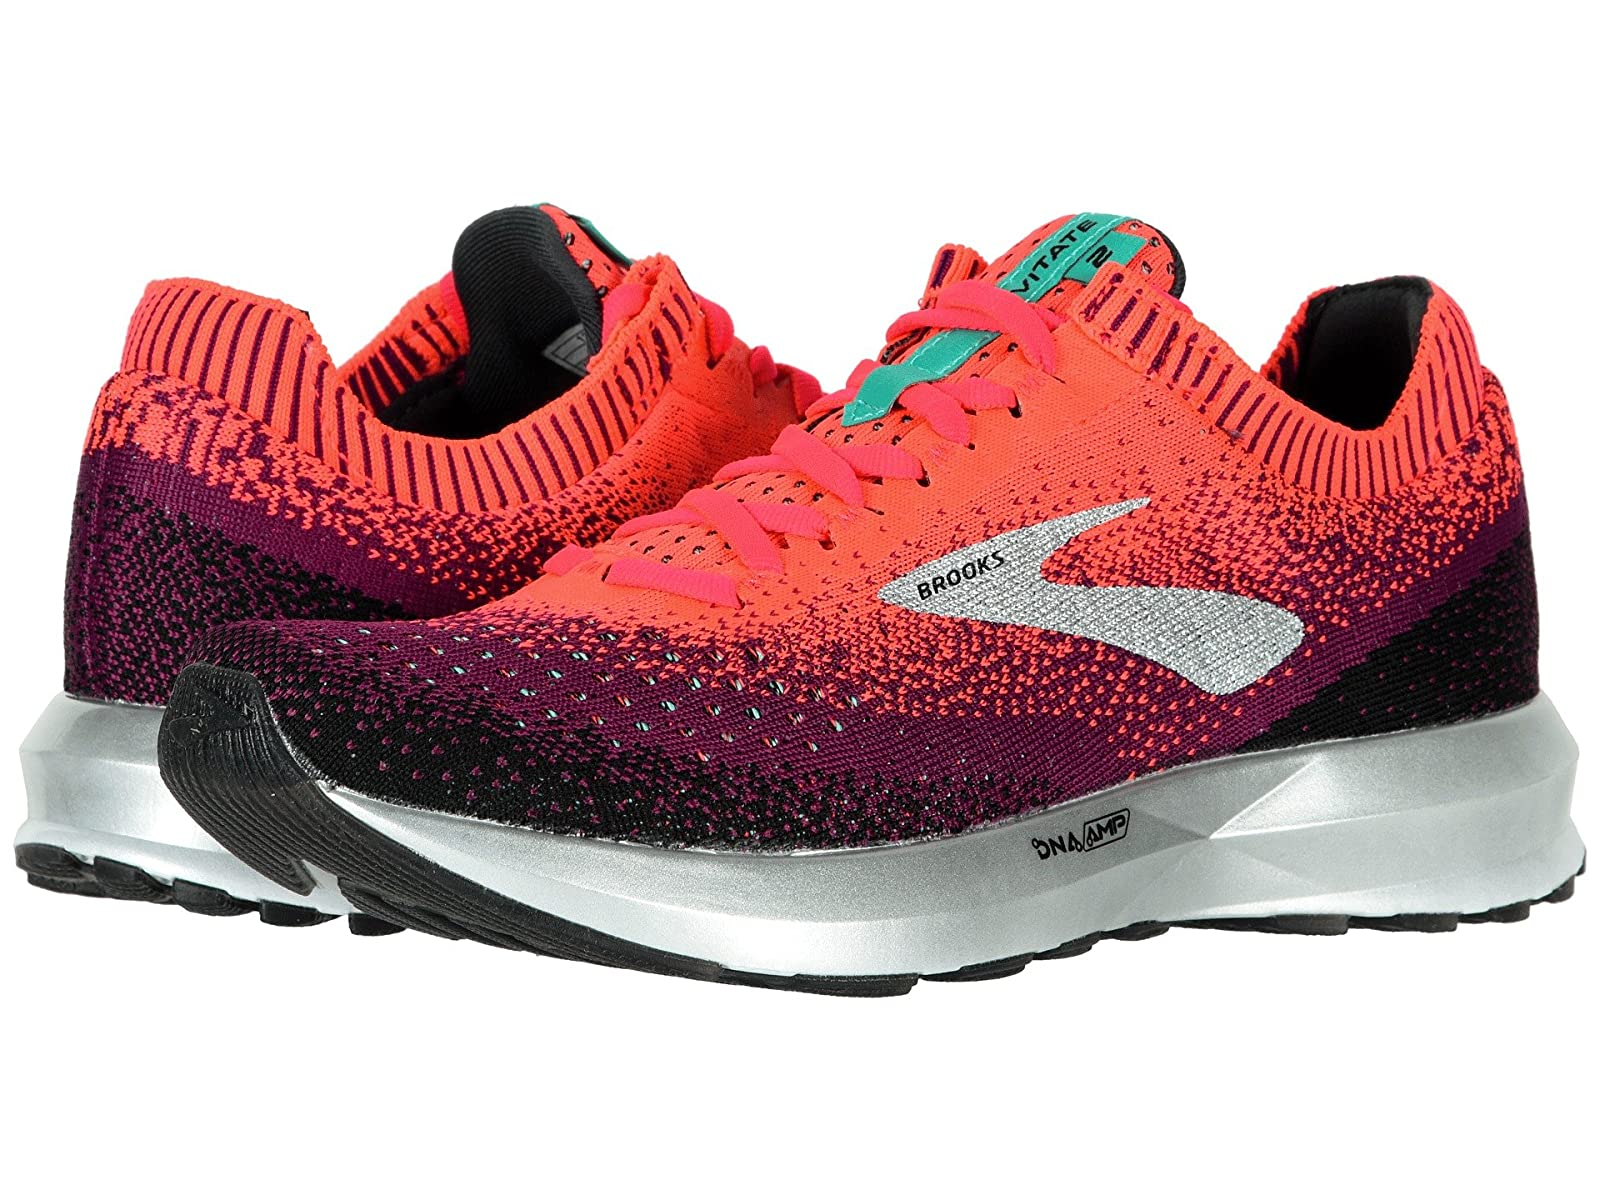 Brooks Levitate 2Atmospheric grades have affordable shoes